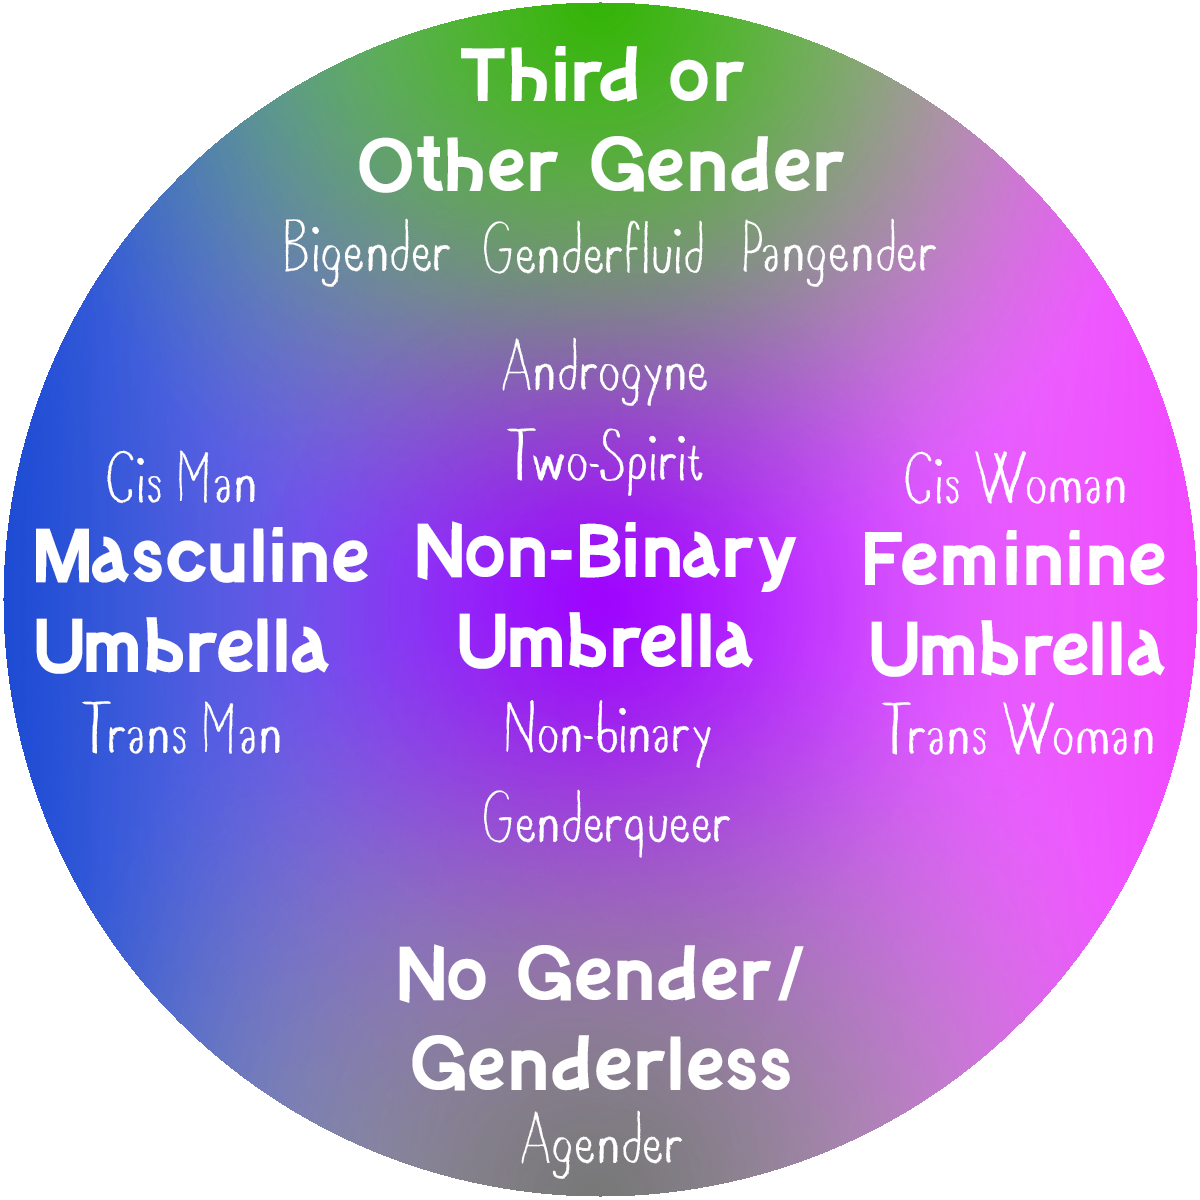 Image Caption: A visual representation of gender identity and how each identity interacts with others. The picture contains five shades with the colors blue, purple, grey, green, and pink from left to right. Each is labeled a with a gender identity umbrella. Lists of each gender identity are below.